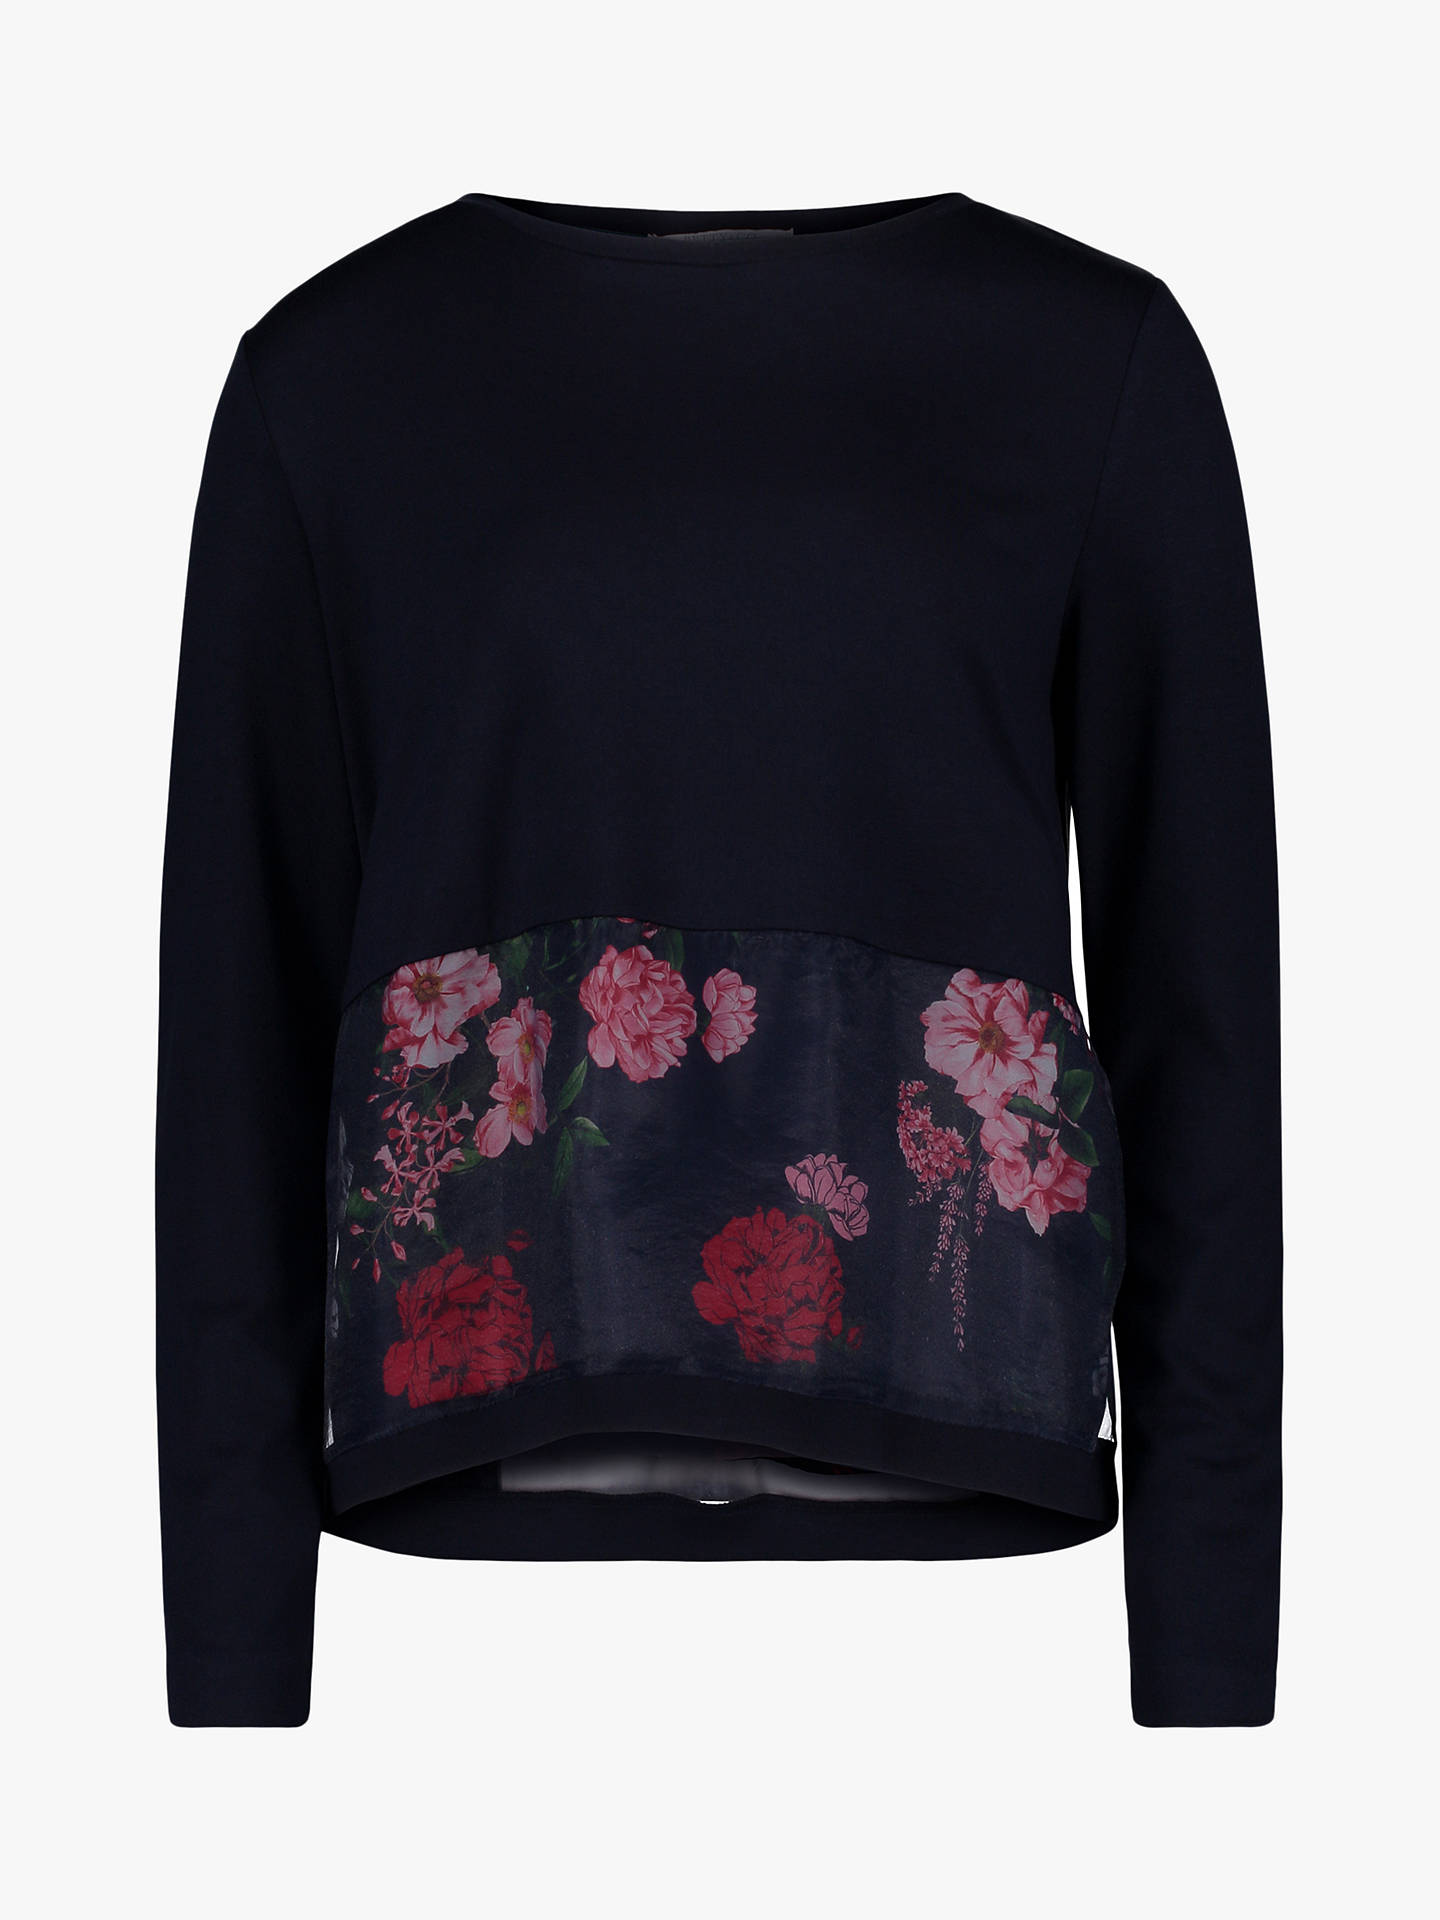 BuyBetty & Co. Layered Floral Top, Dark Sapphire, 20 Online at johnlewis.com